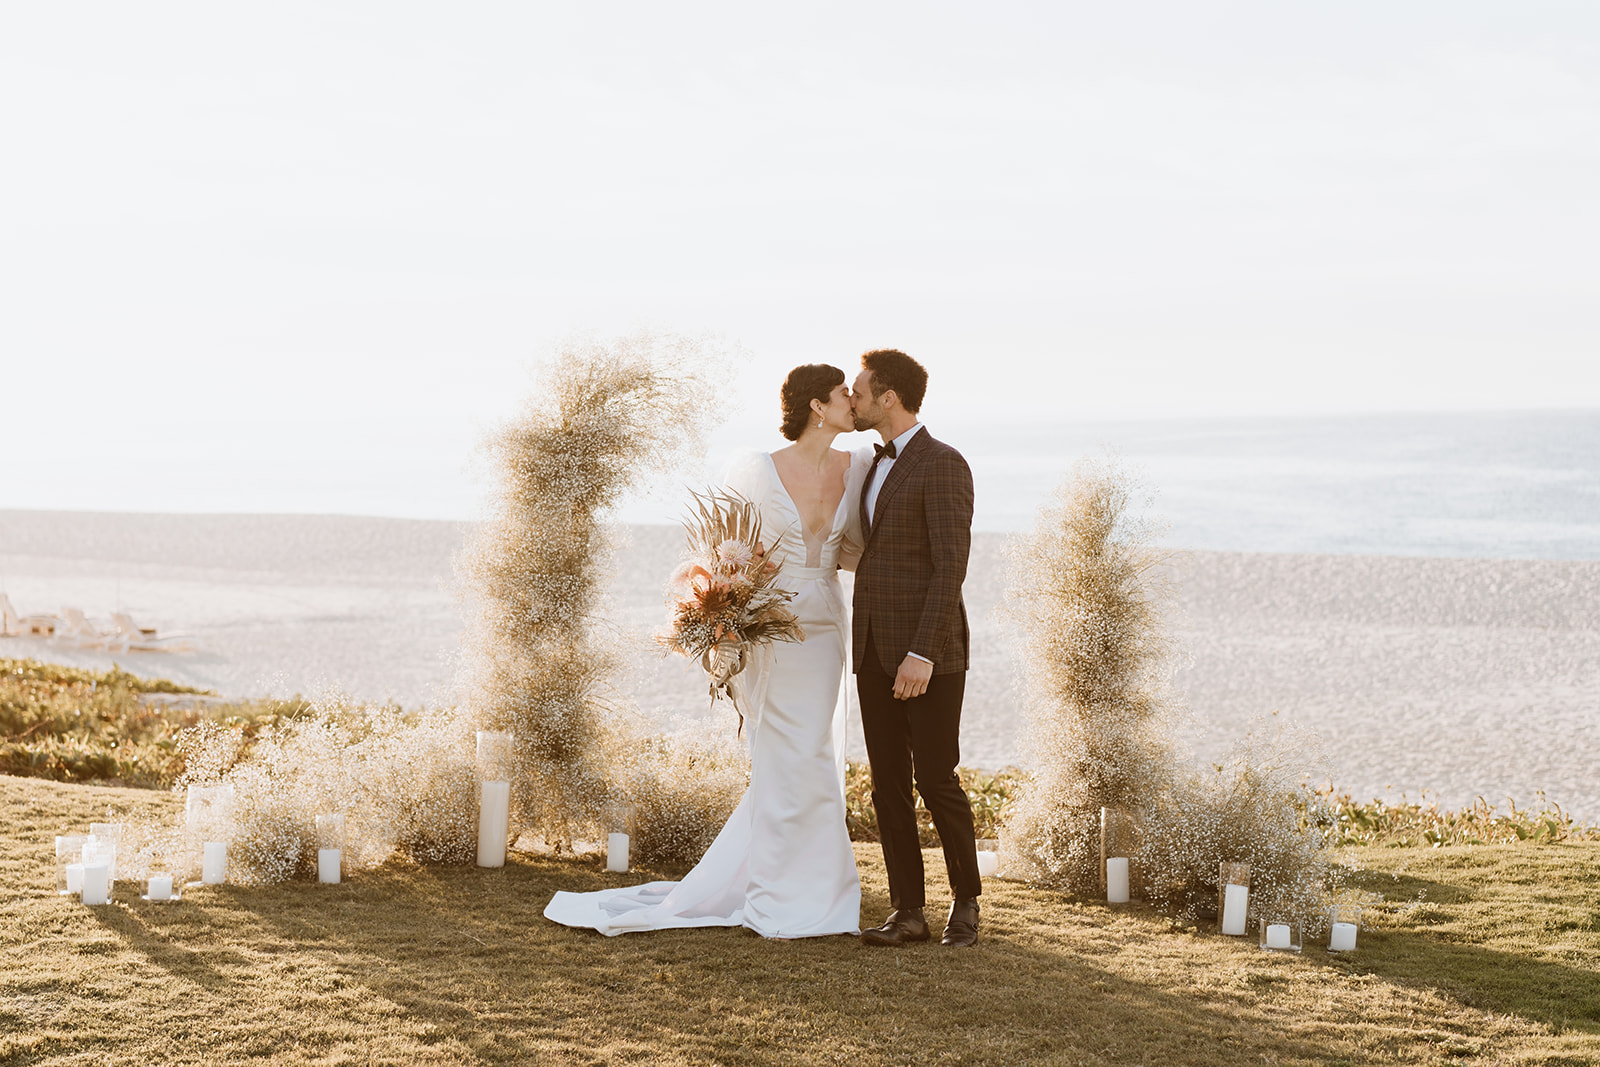 A chic elopement in San Jose del Cabo